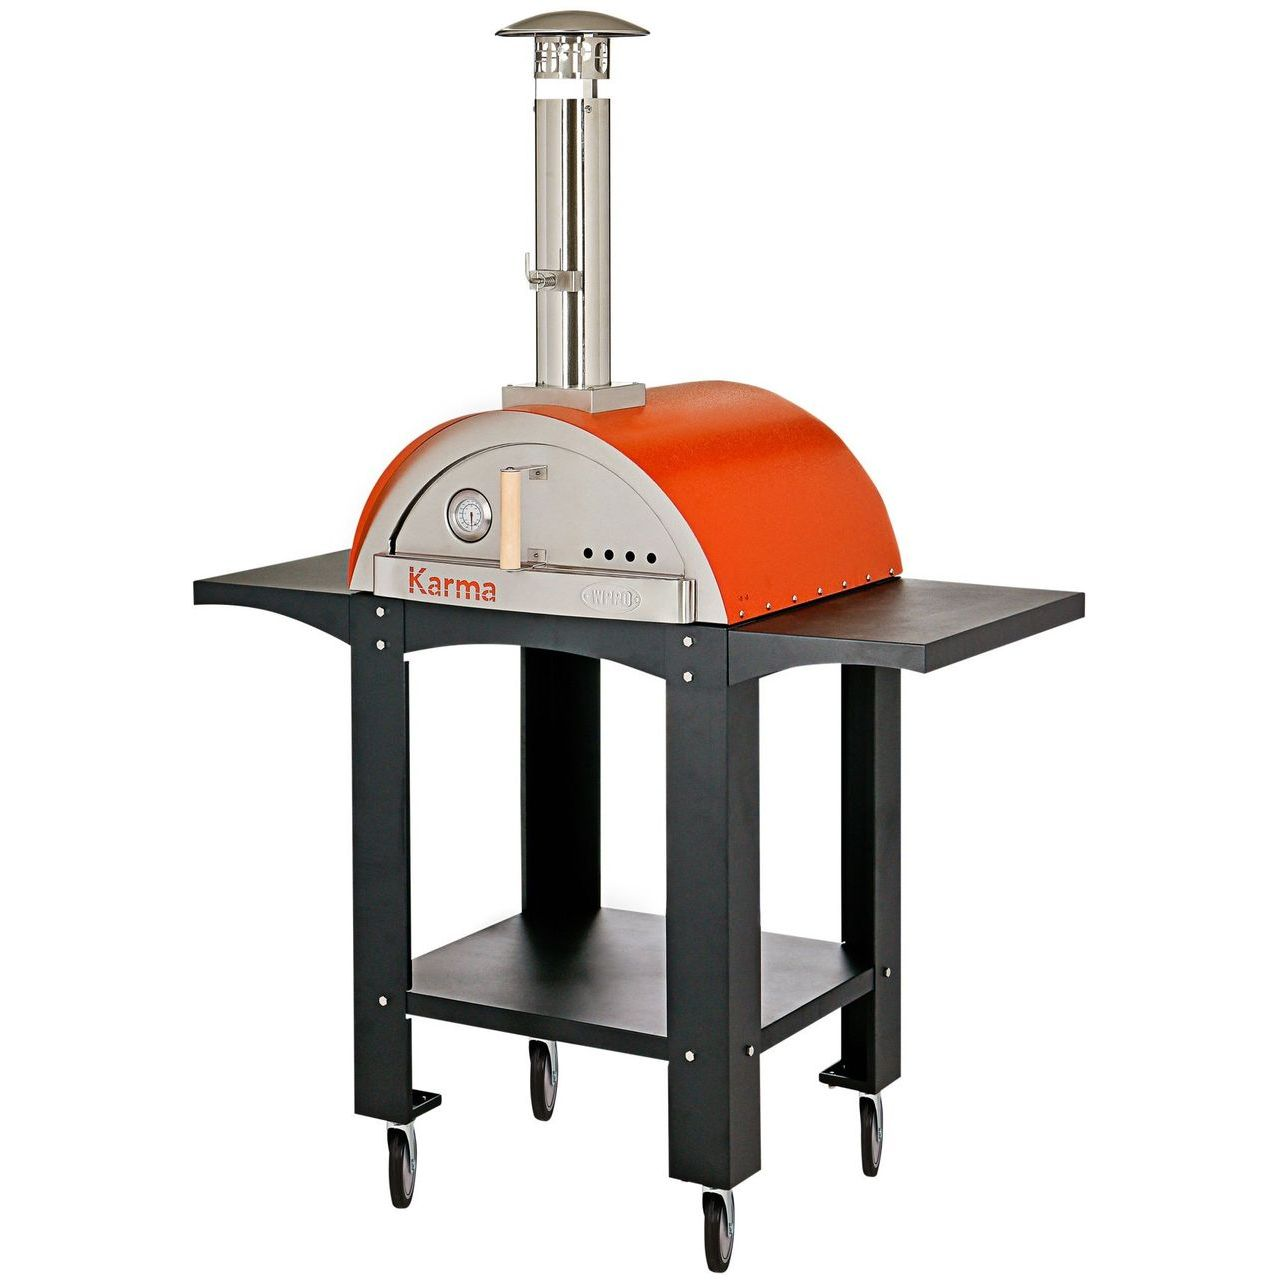 WPPO Karma 25 Wood Fired Pizza Oven With Black Stand - Orange